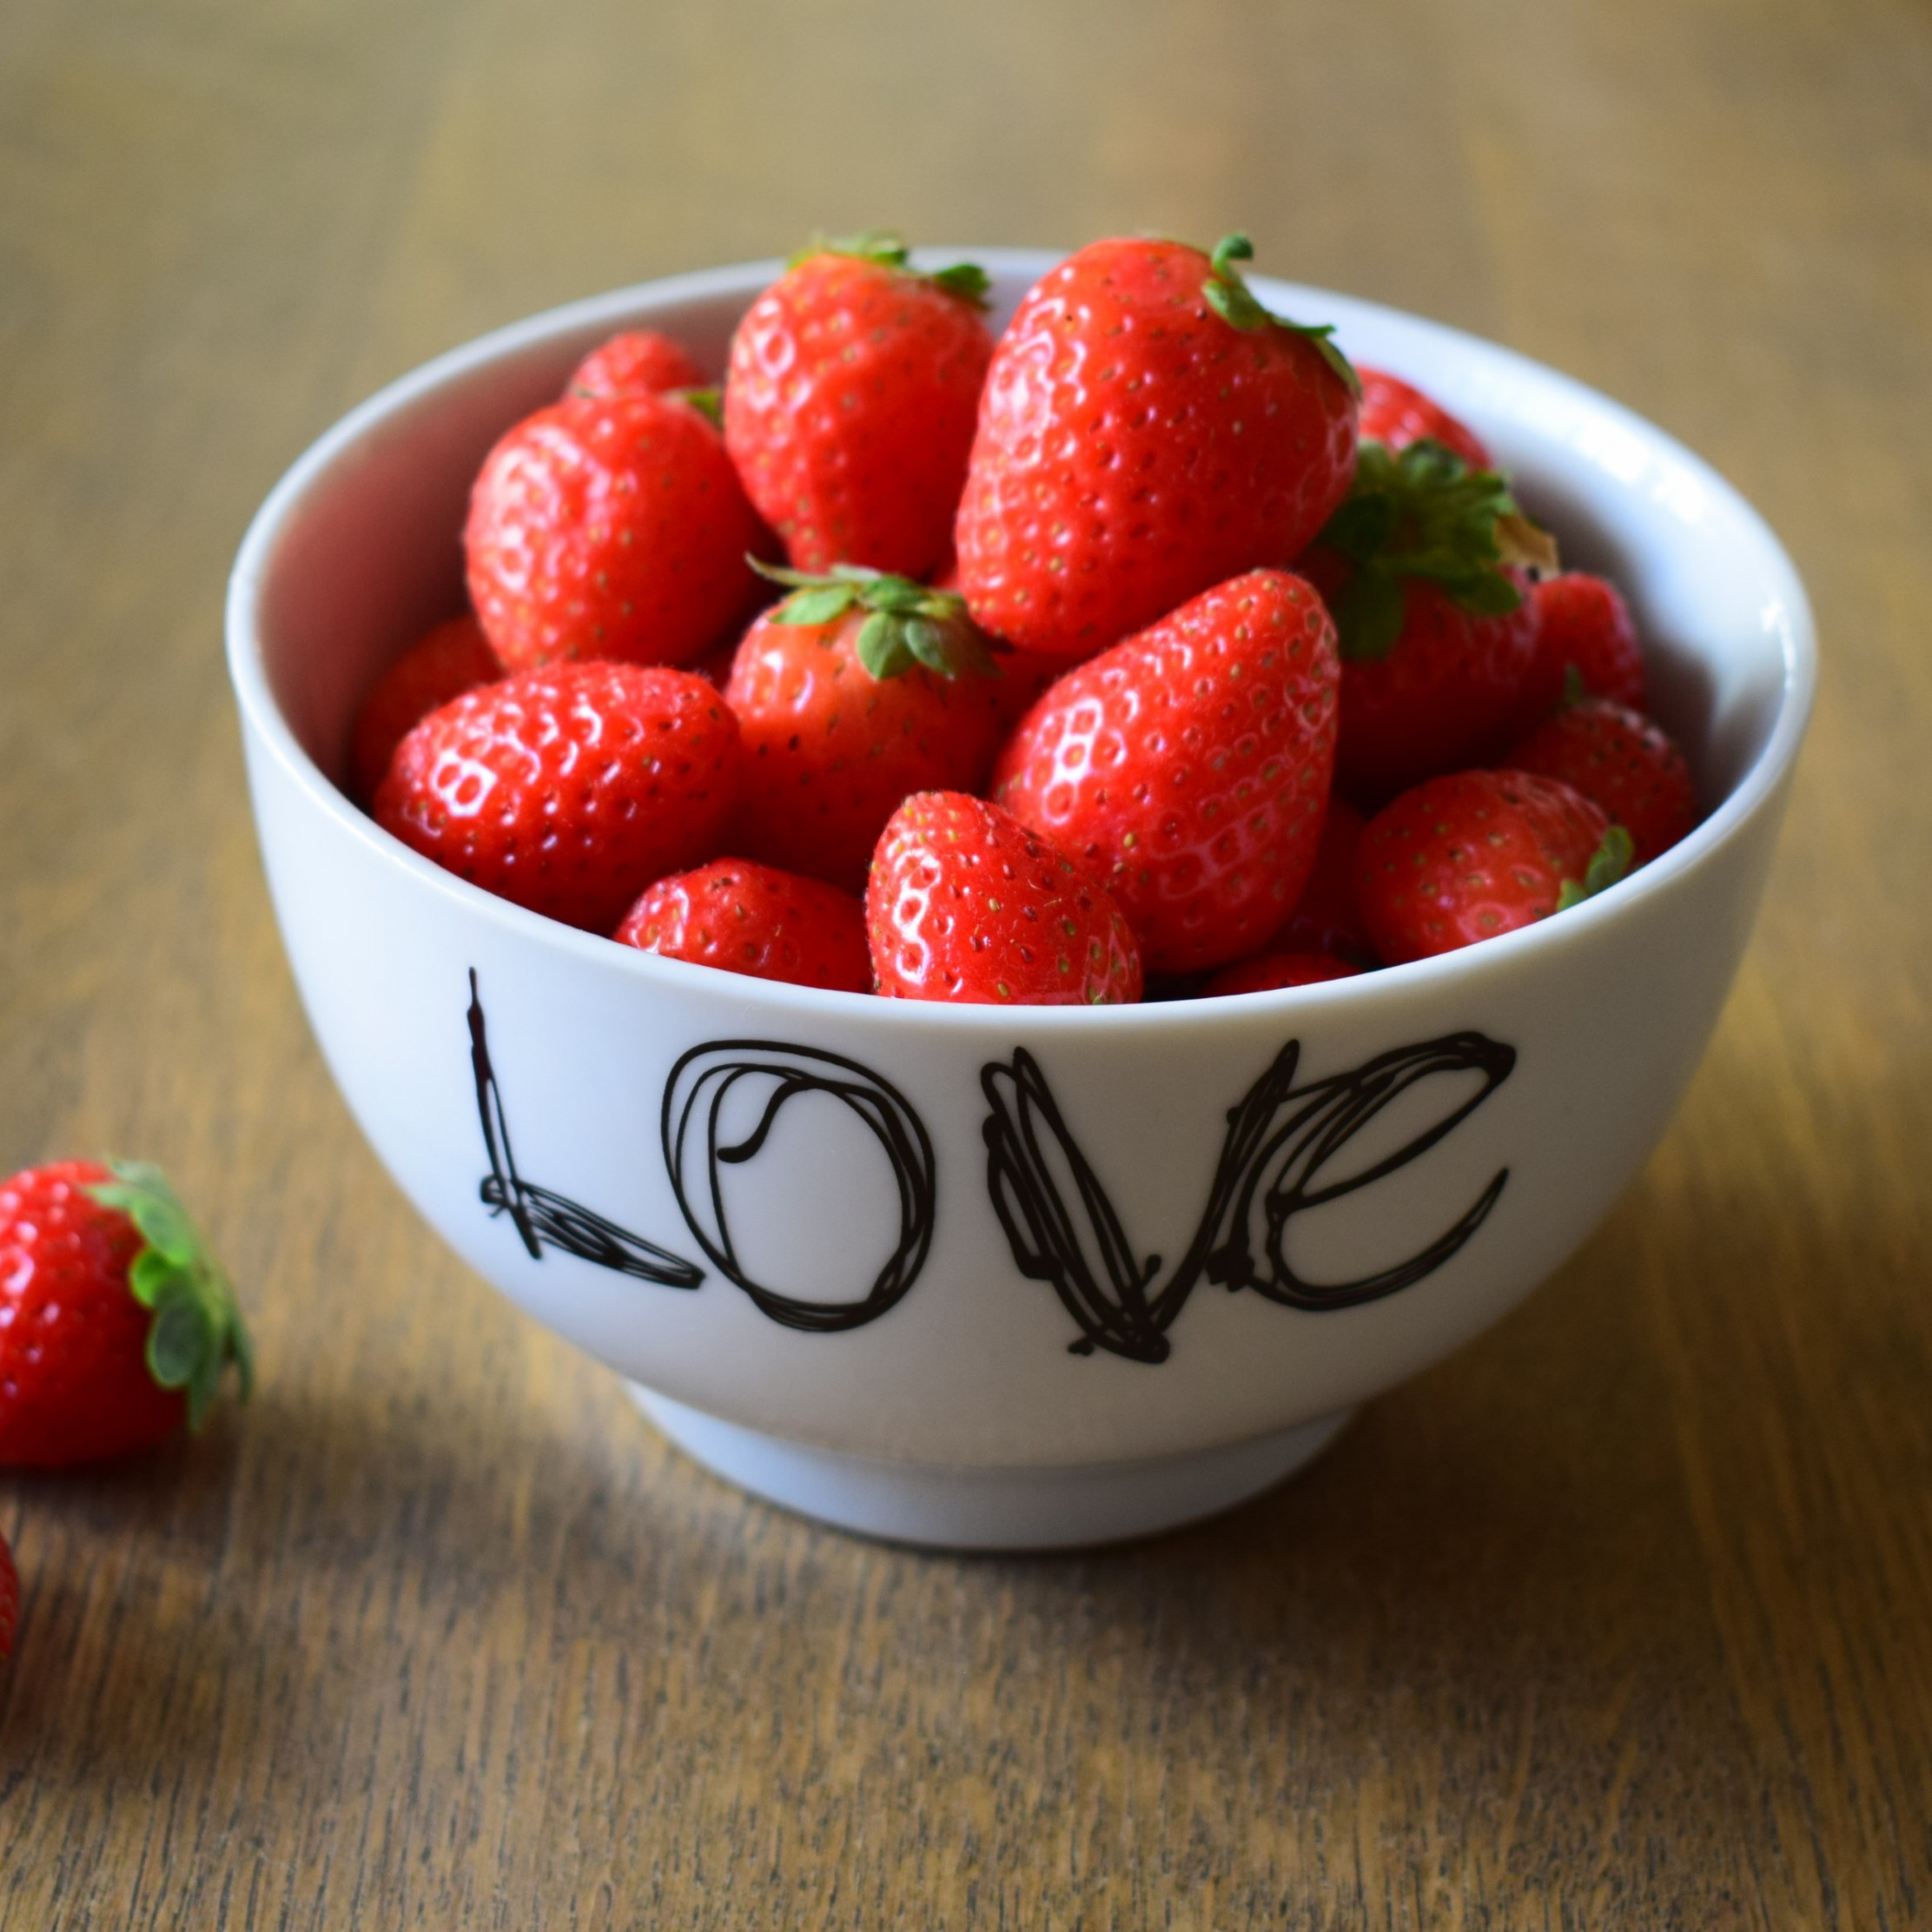 Strawberries with love wallpaper 2224x2224